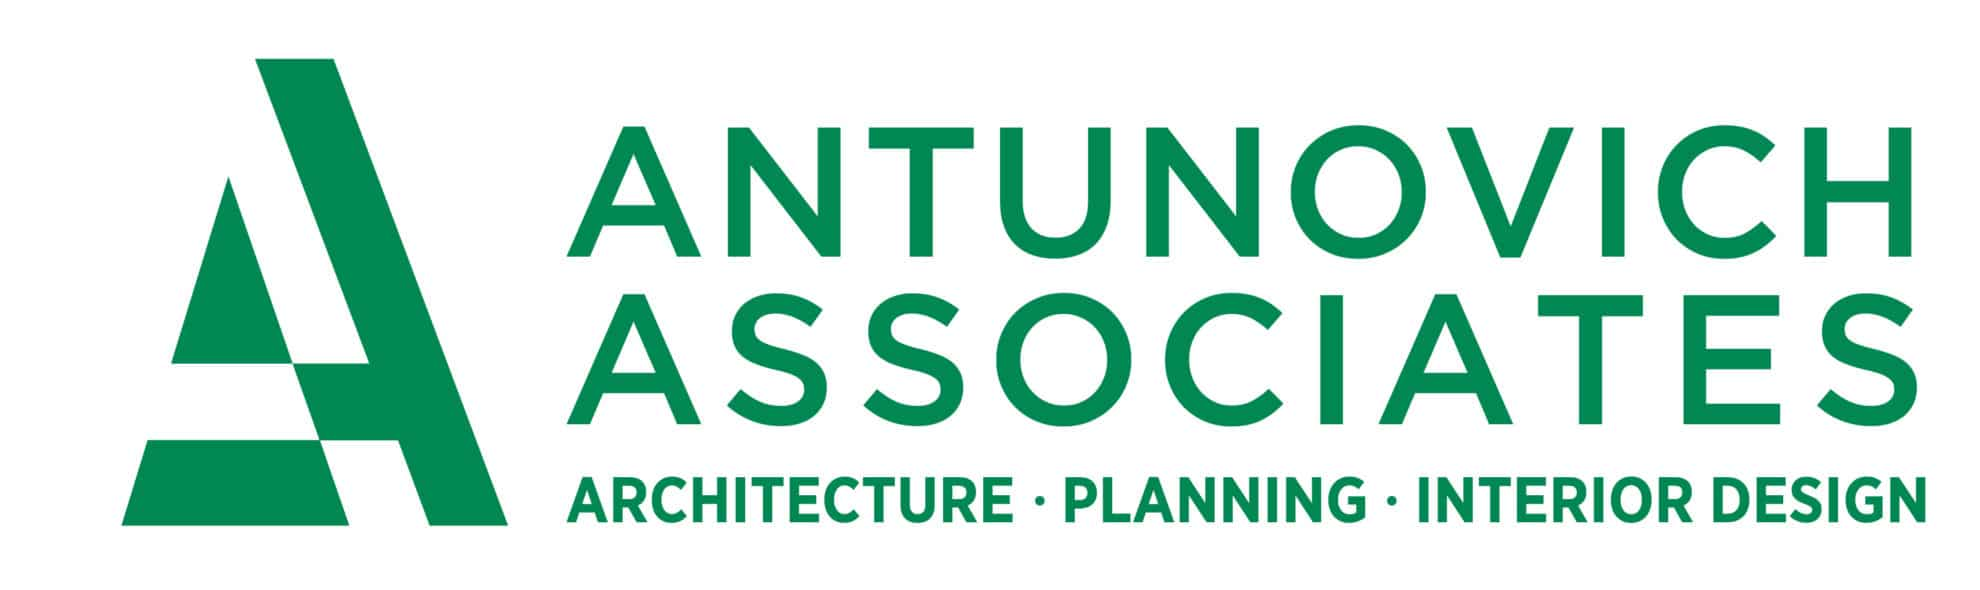 Architect Antunovich Associates Chicago, IL logo